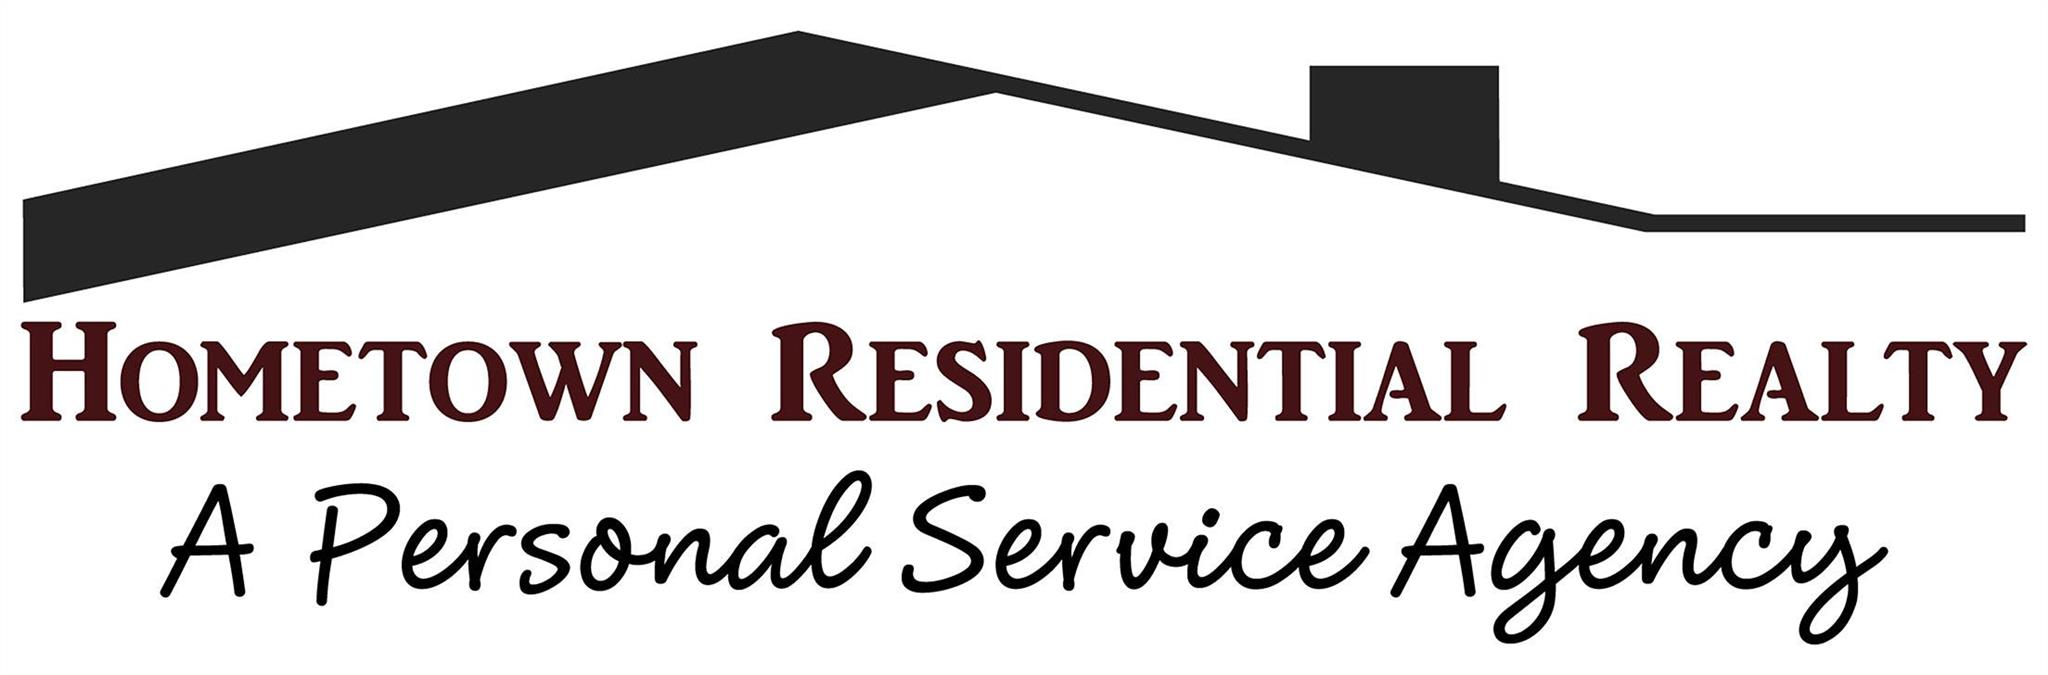 Hometown Residential Realty Logo